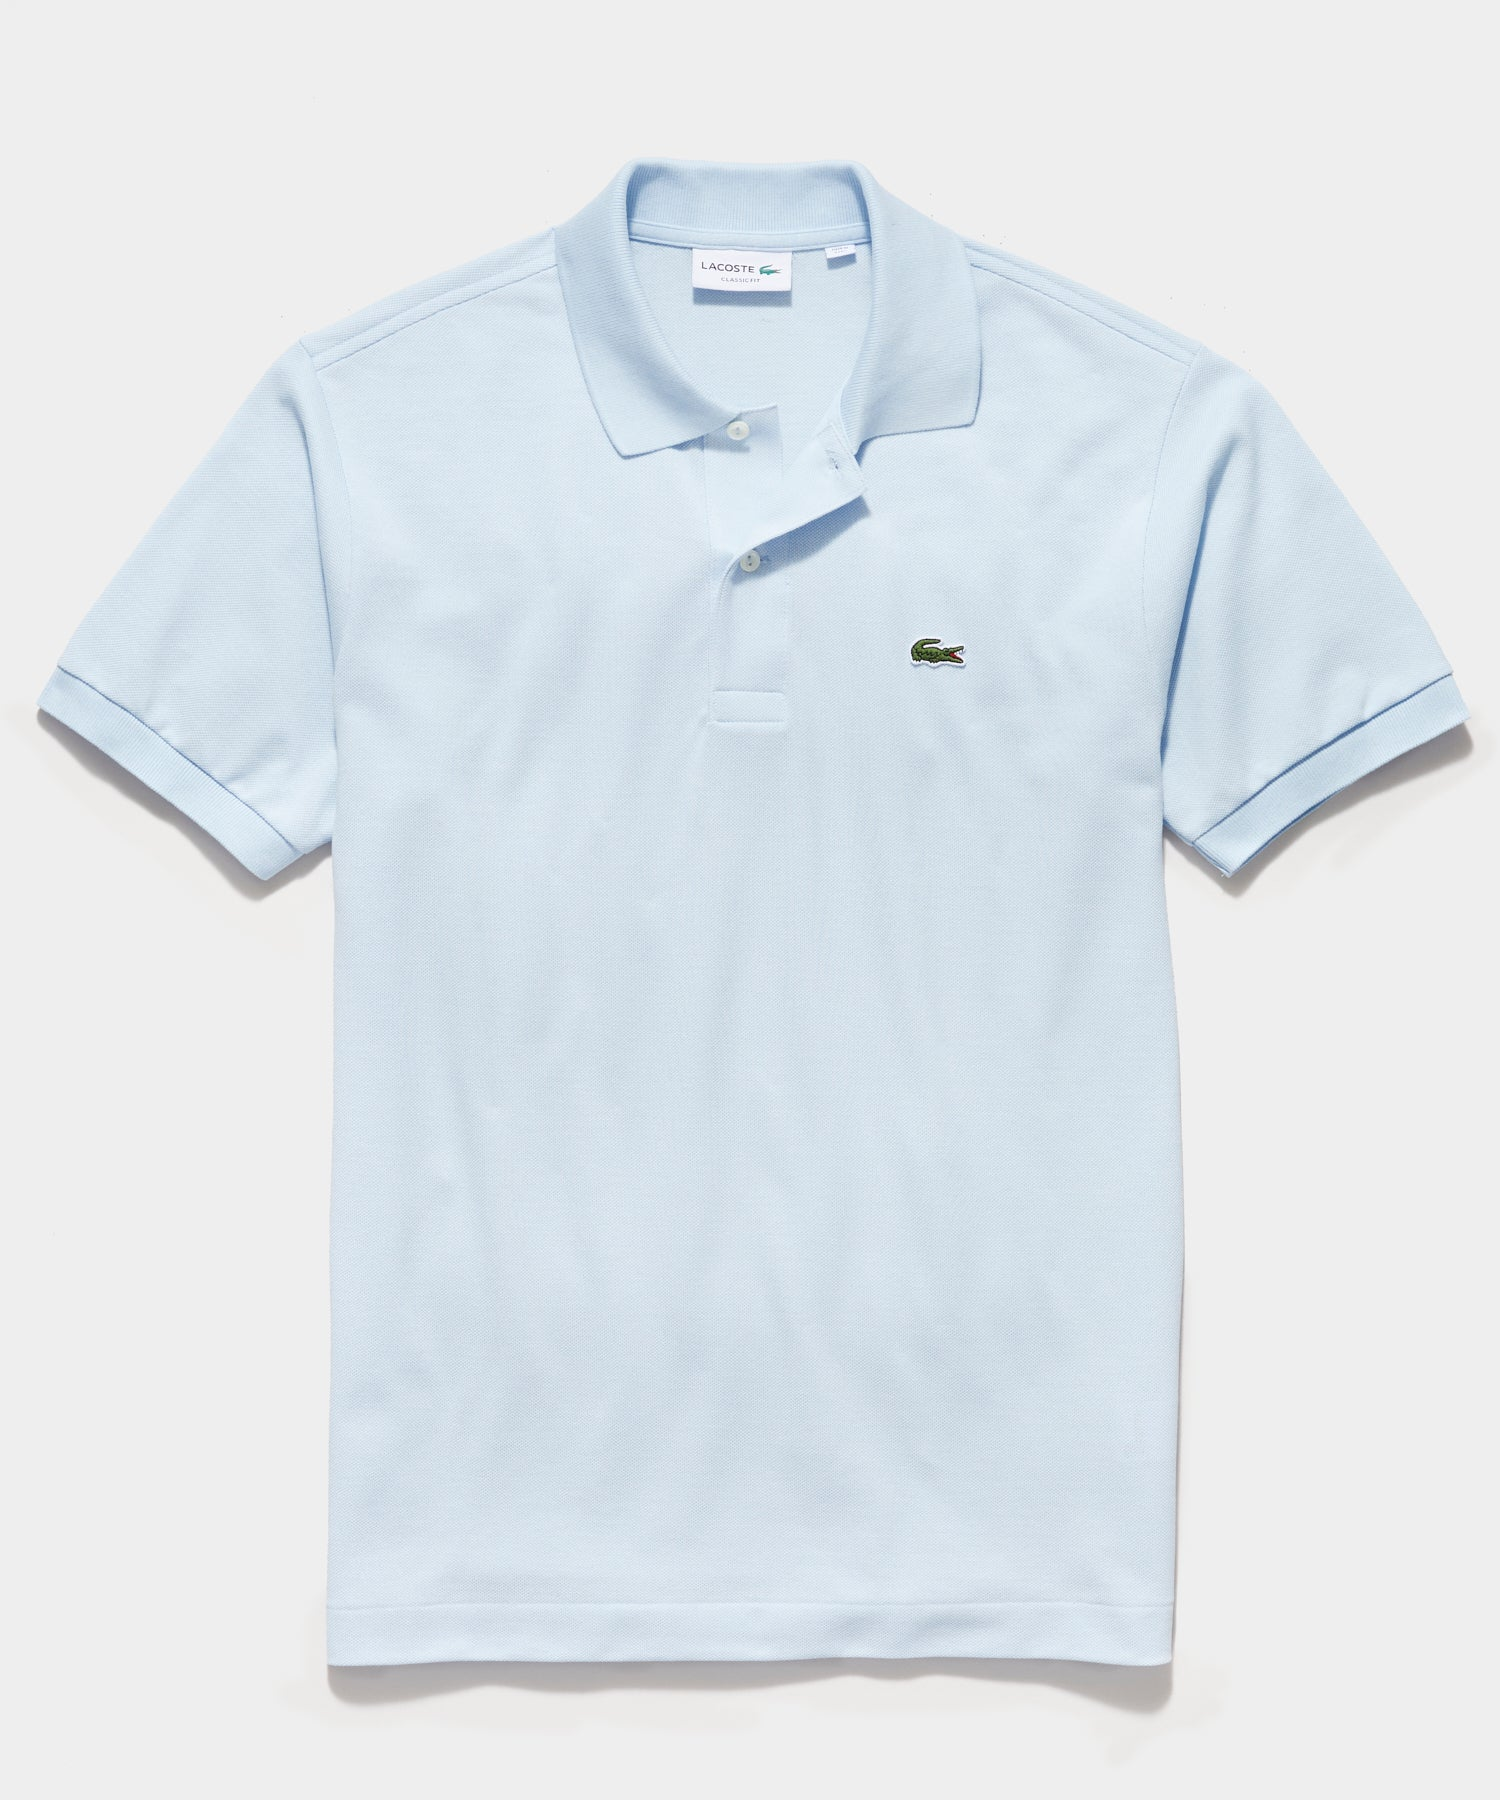 Lacoste Classic Fit Polo in Light Blue